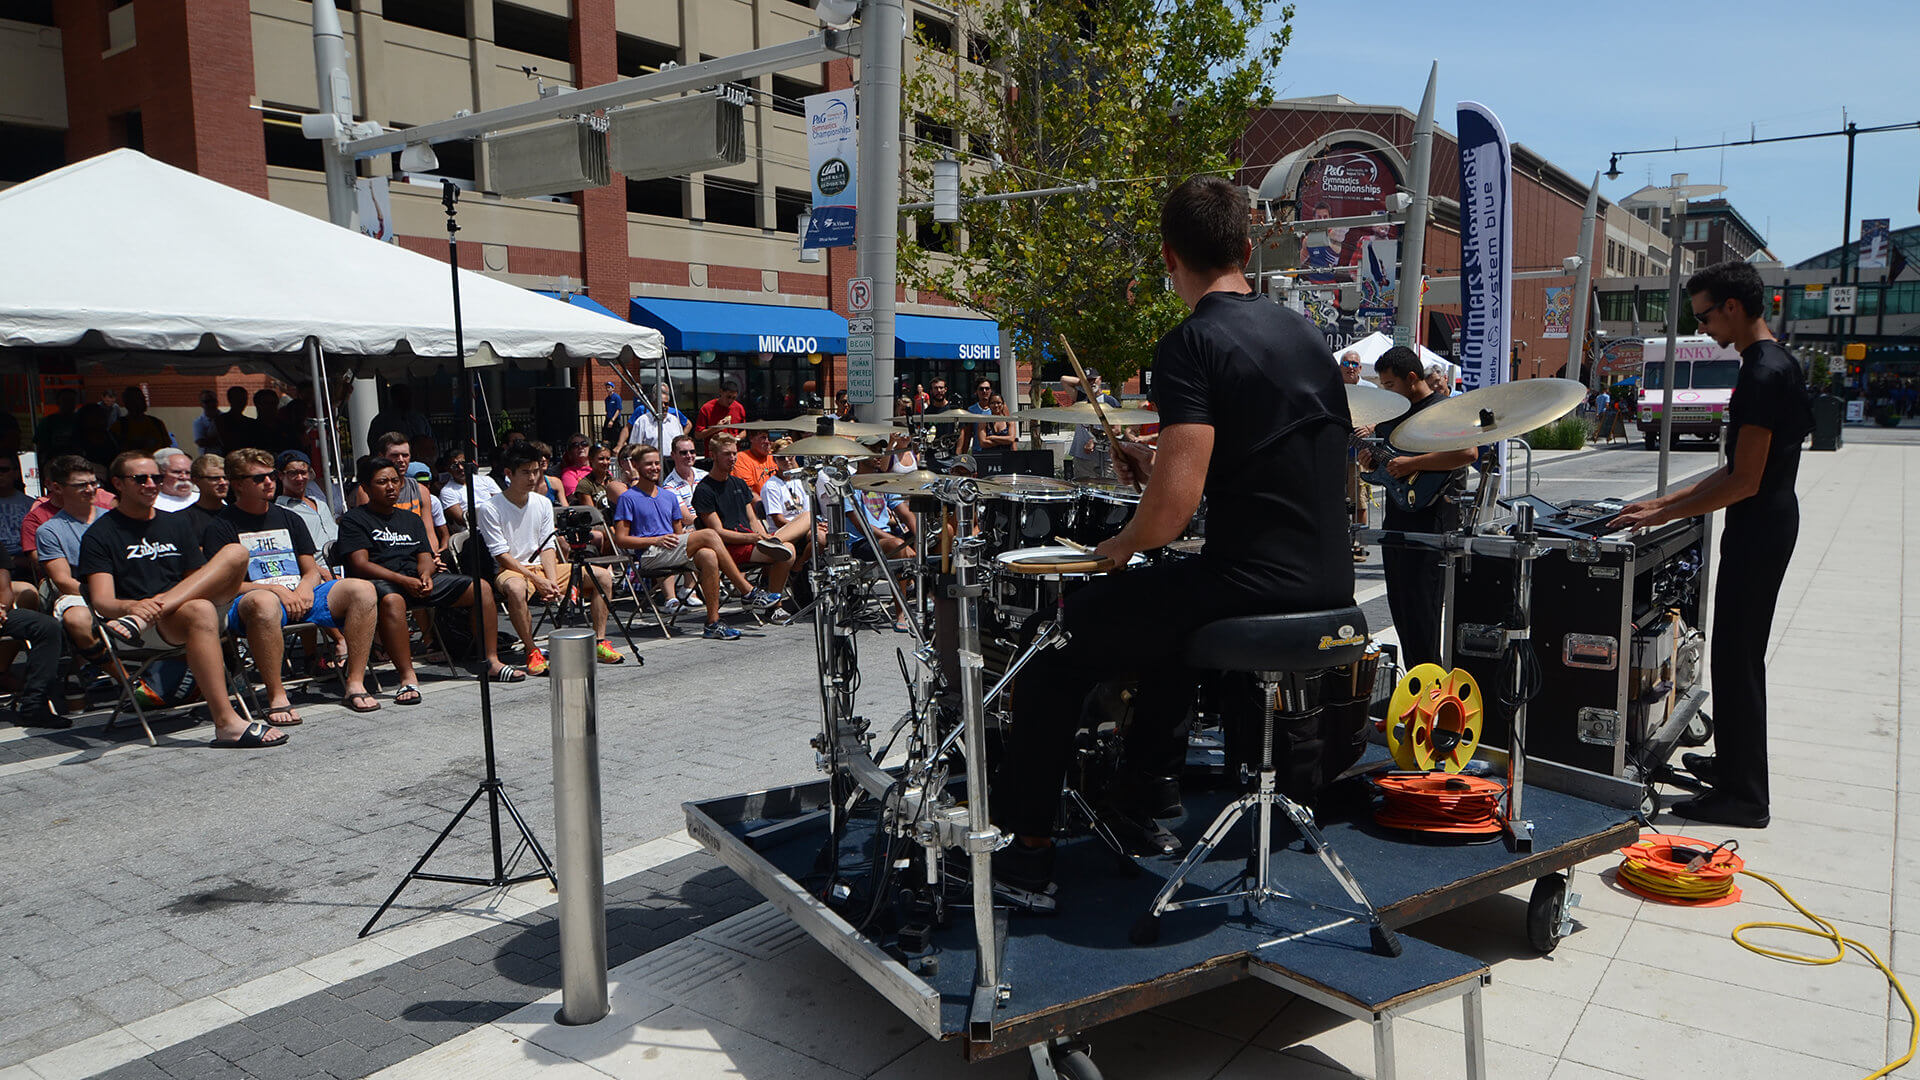 Performers Showcase will bring excitement to the streets